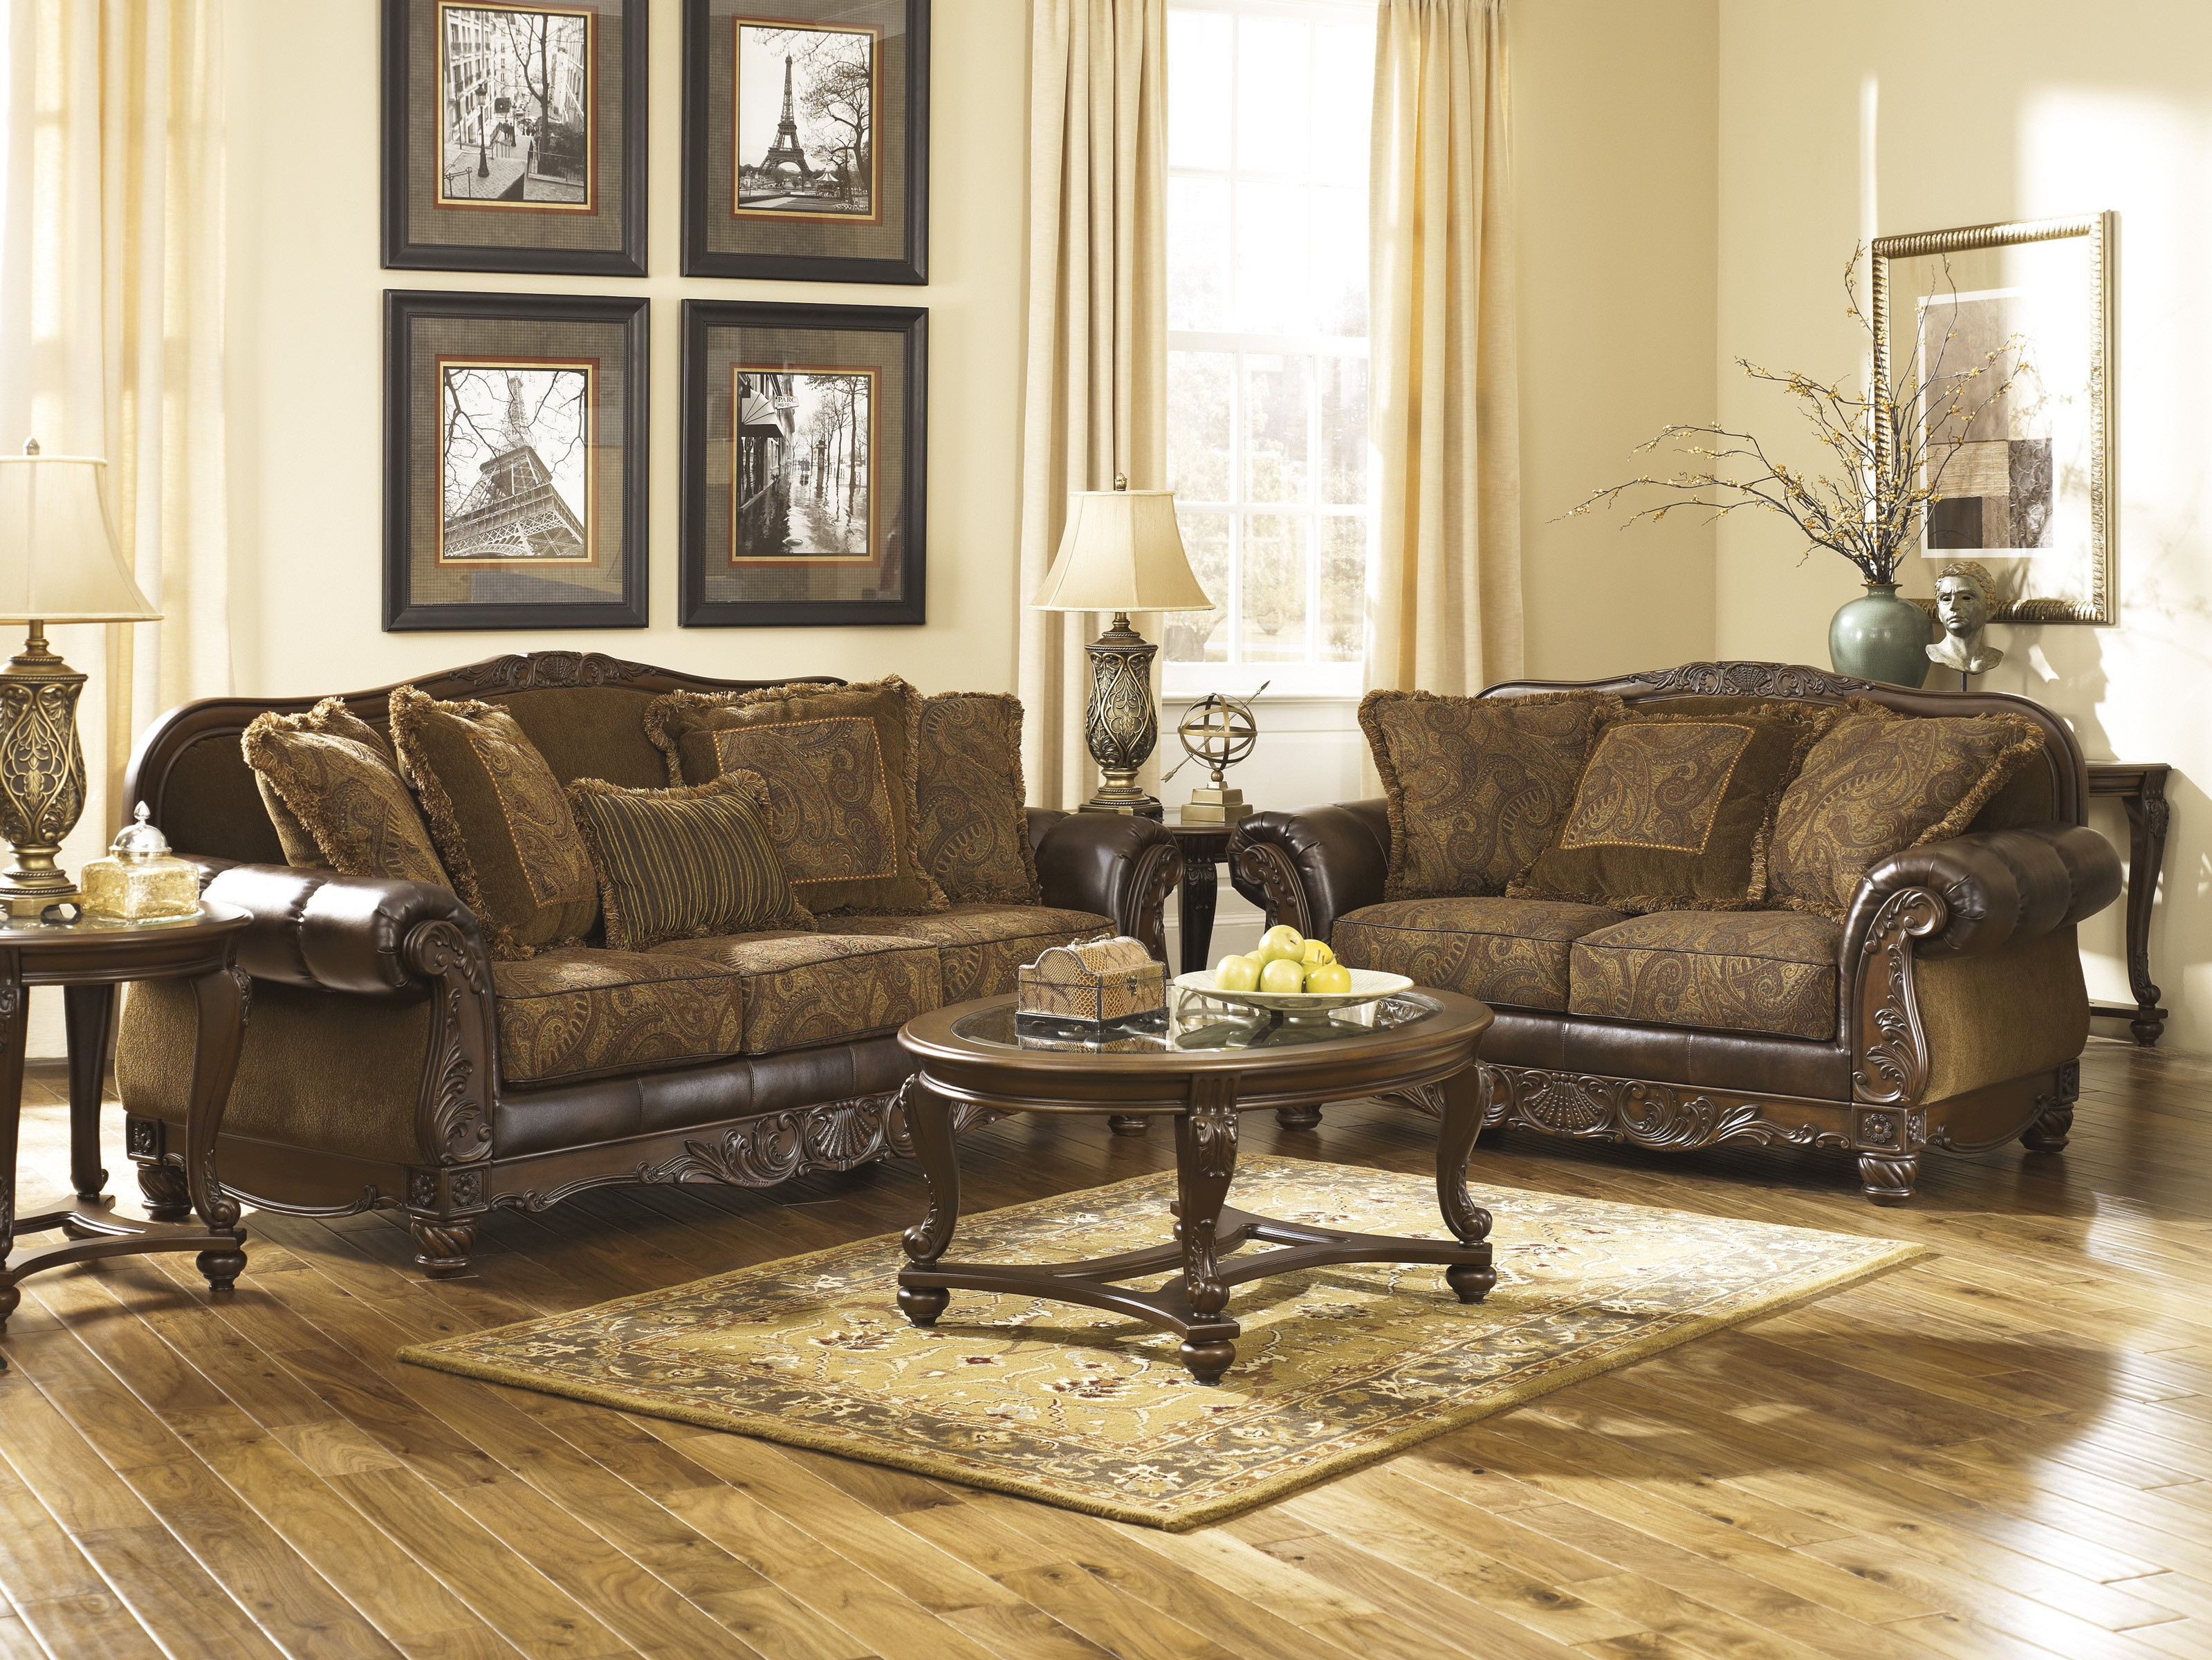 Brilliant ashley furniture tucson for home furniture with ashley furniture tucson az